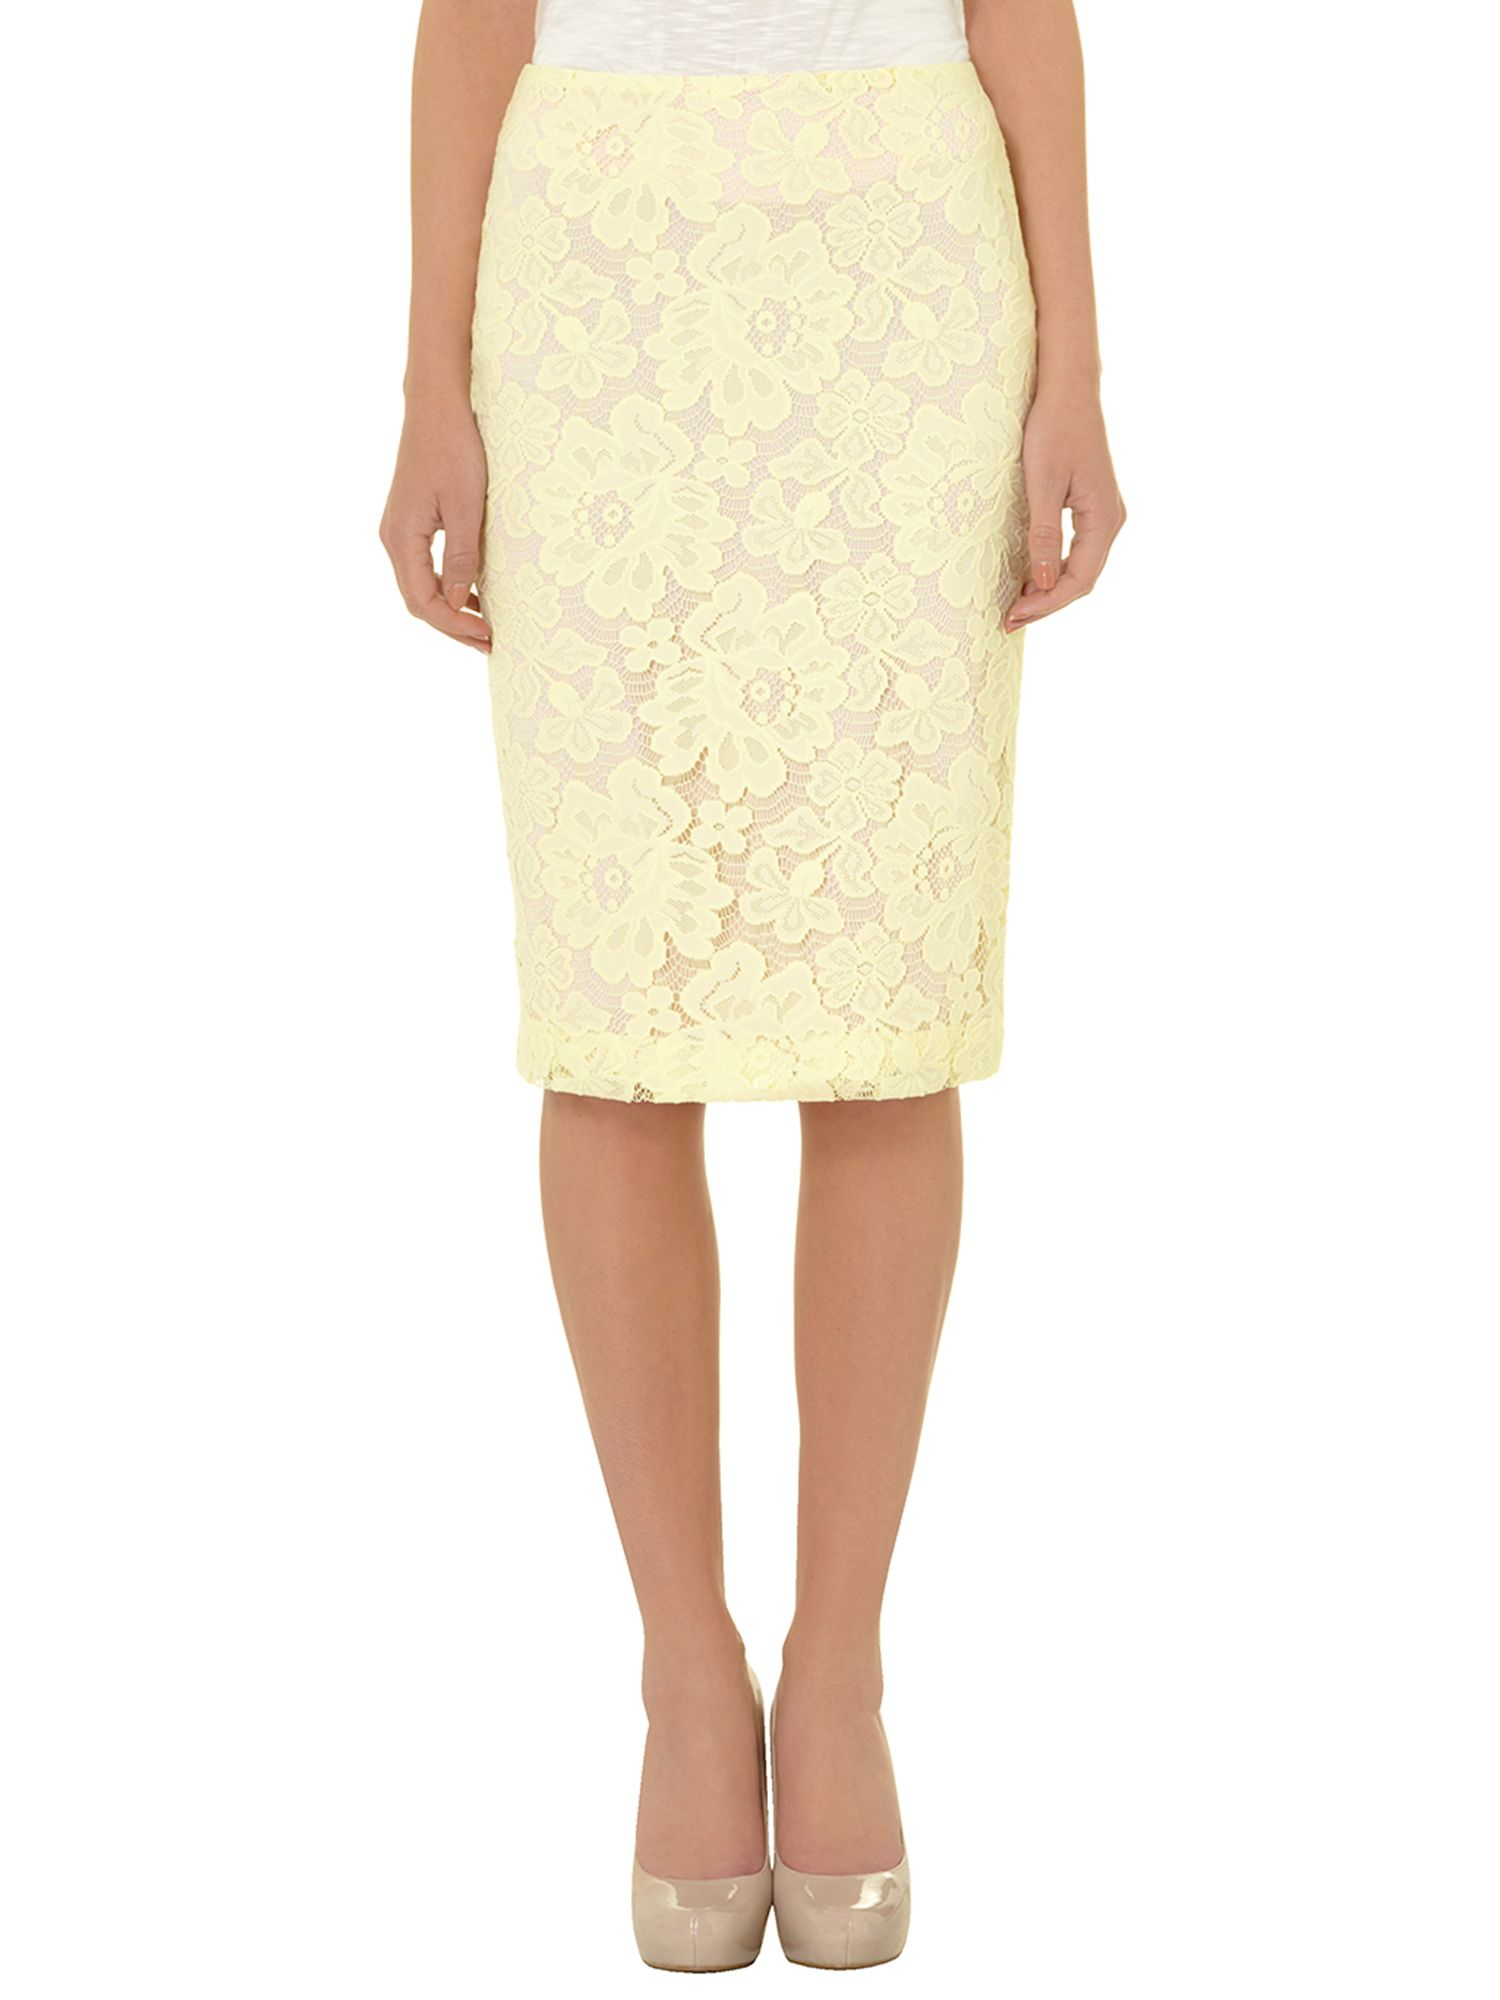 Lace fitted pencil skirt